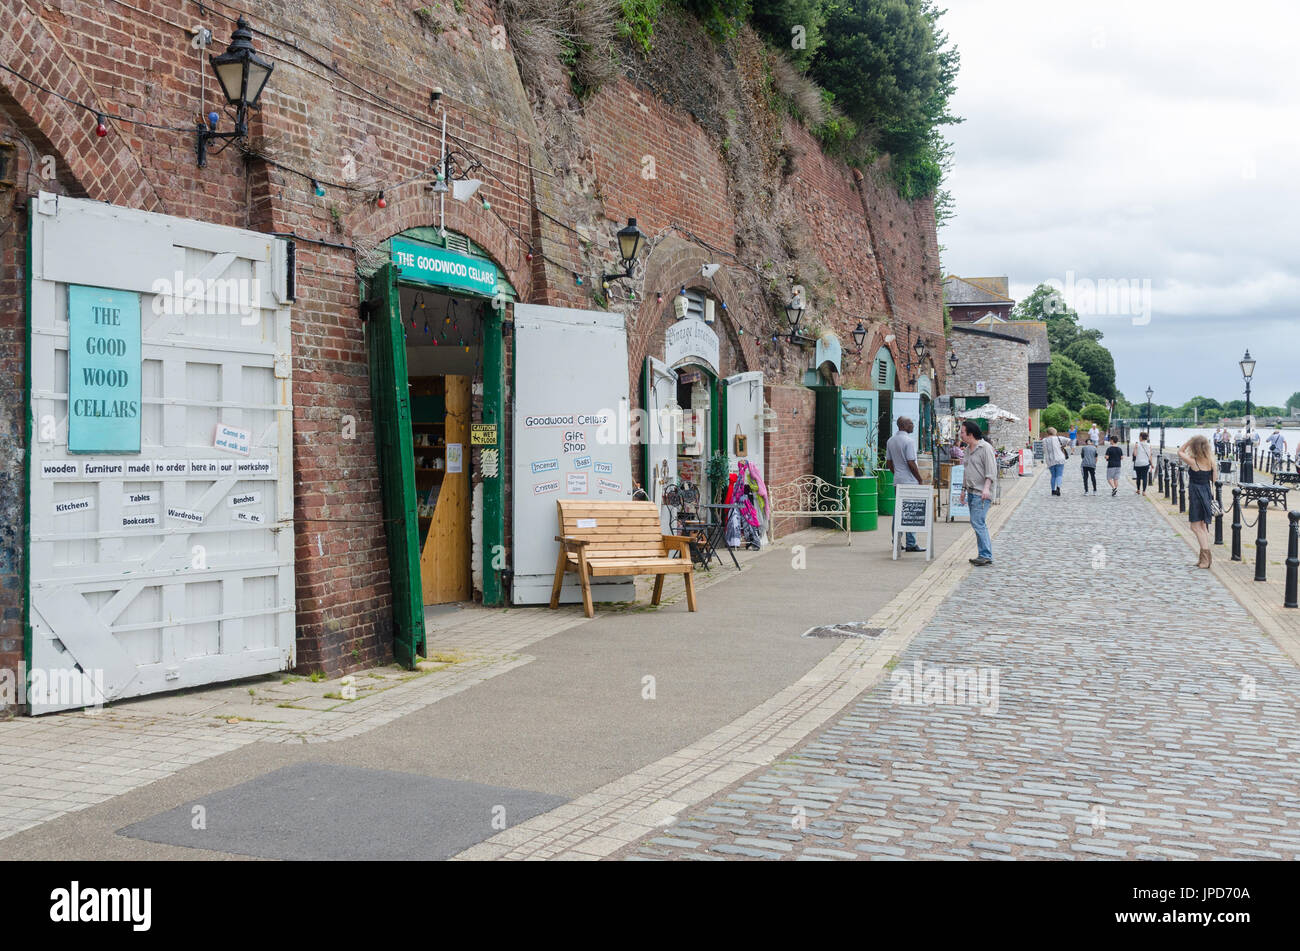 Shops and restaurants in the cellars on The Quay on the bank of the River Exe in Exeter, Devon Stock Photo